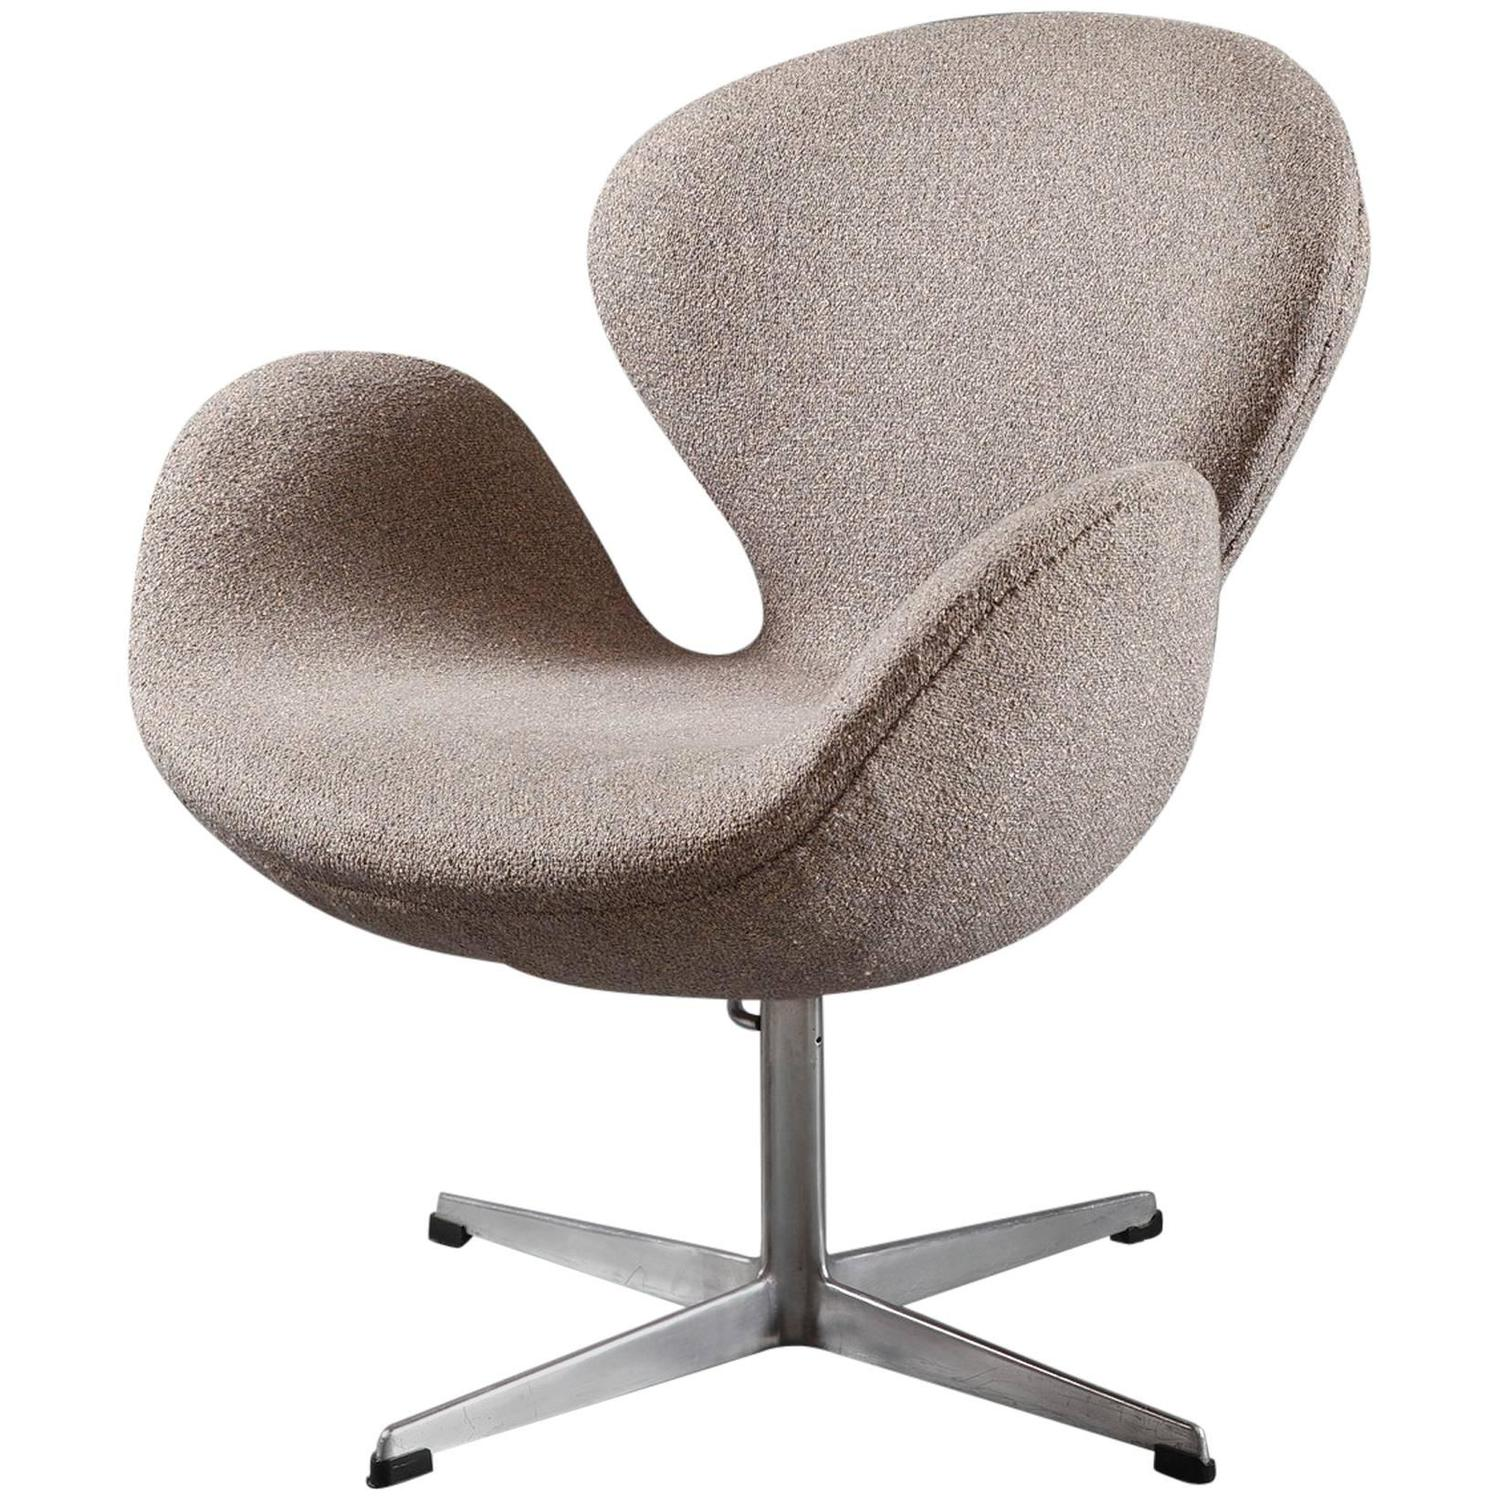 Swan chair by arne jacobsen for sale at 1stdibs for Swan chair nachbau